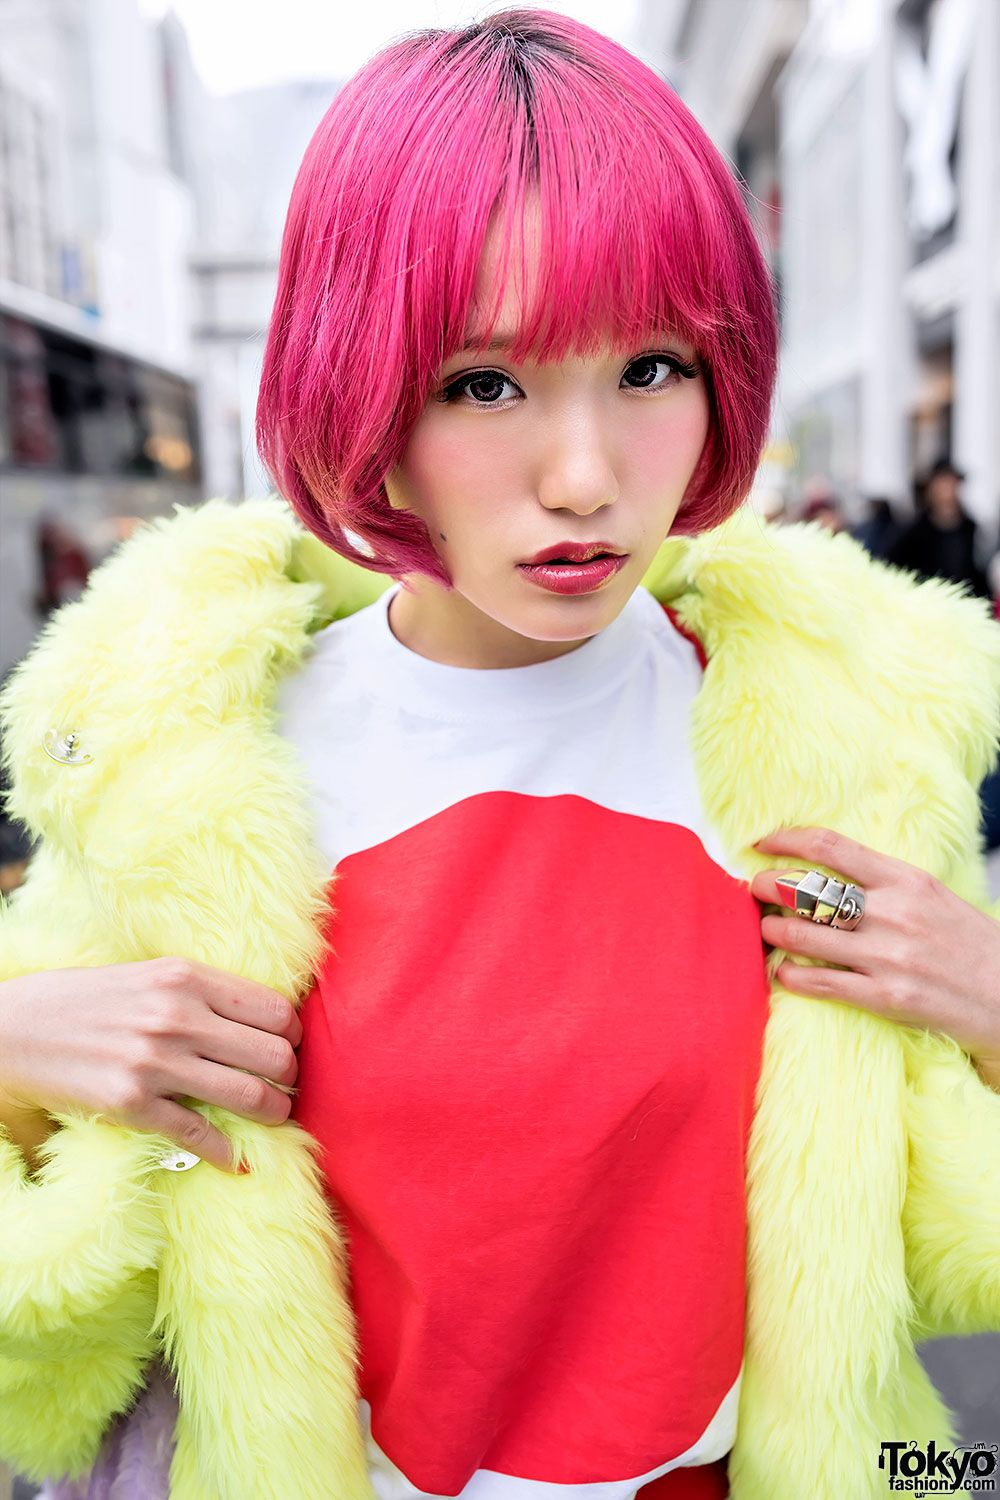 Mitake is a stylish Harajuku girl. Japanese Flag, Faux Fur & Pink Hair